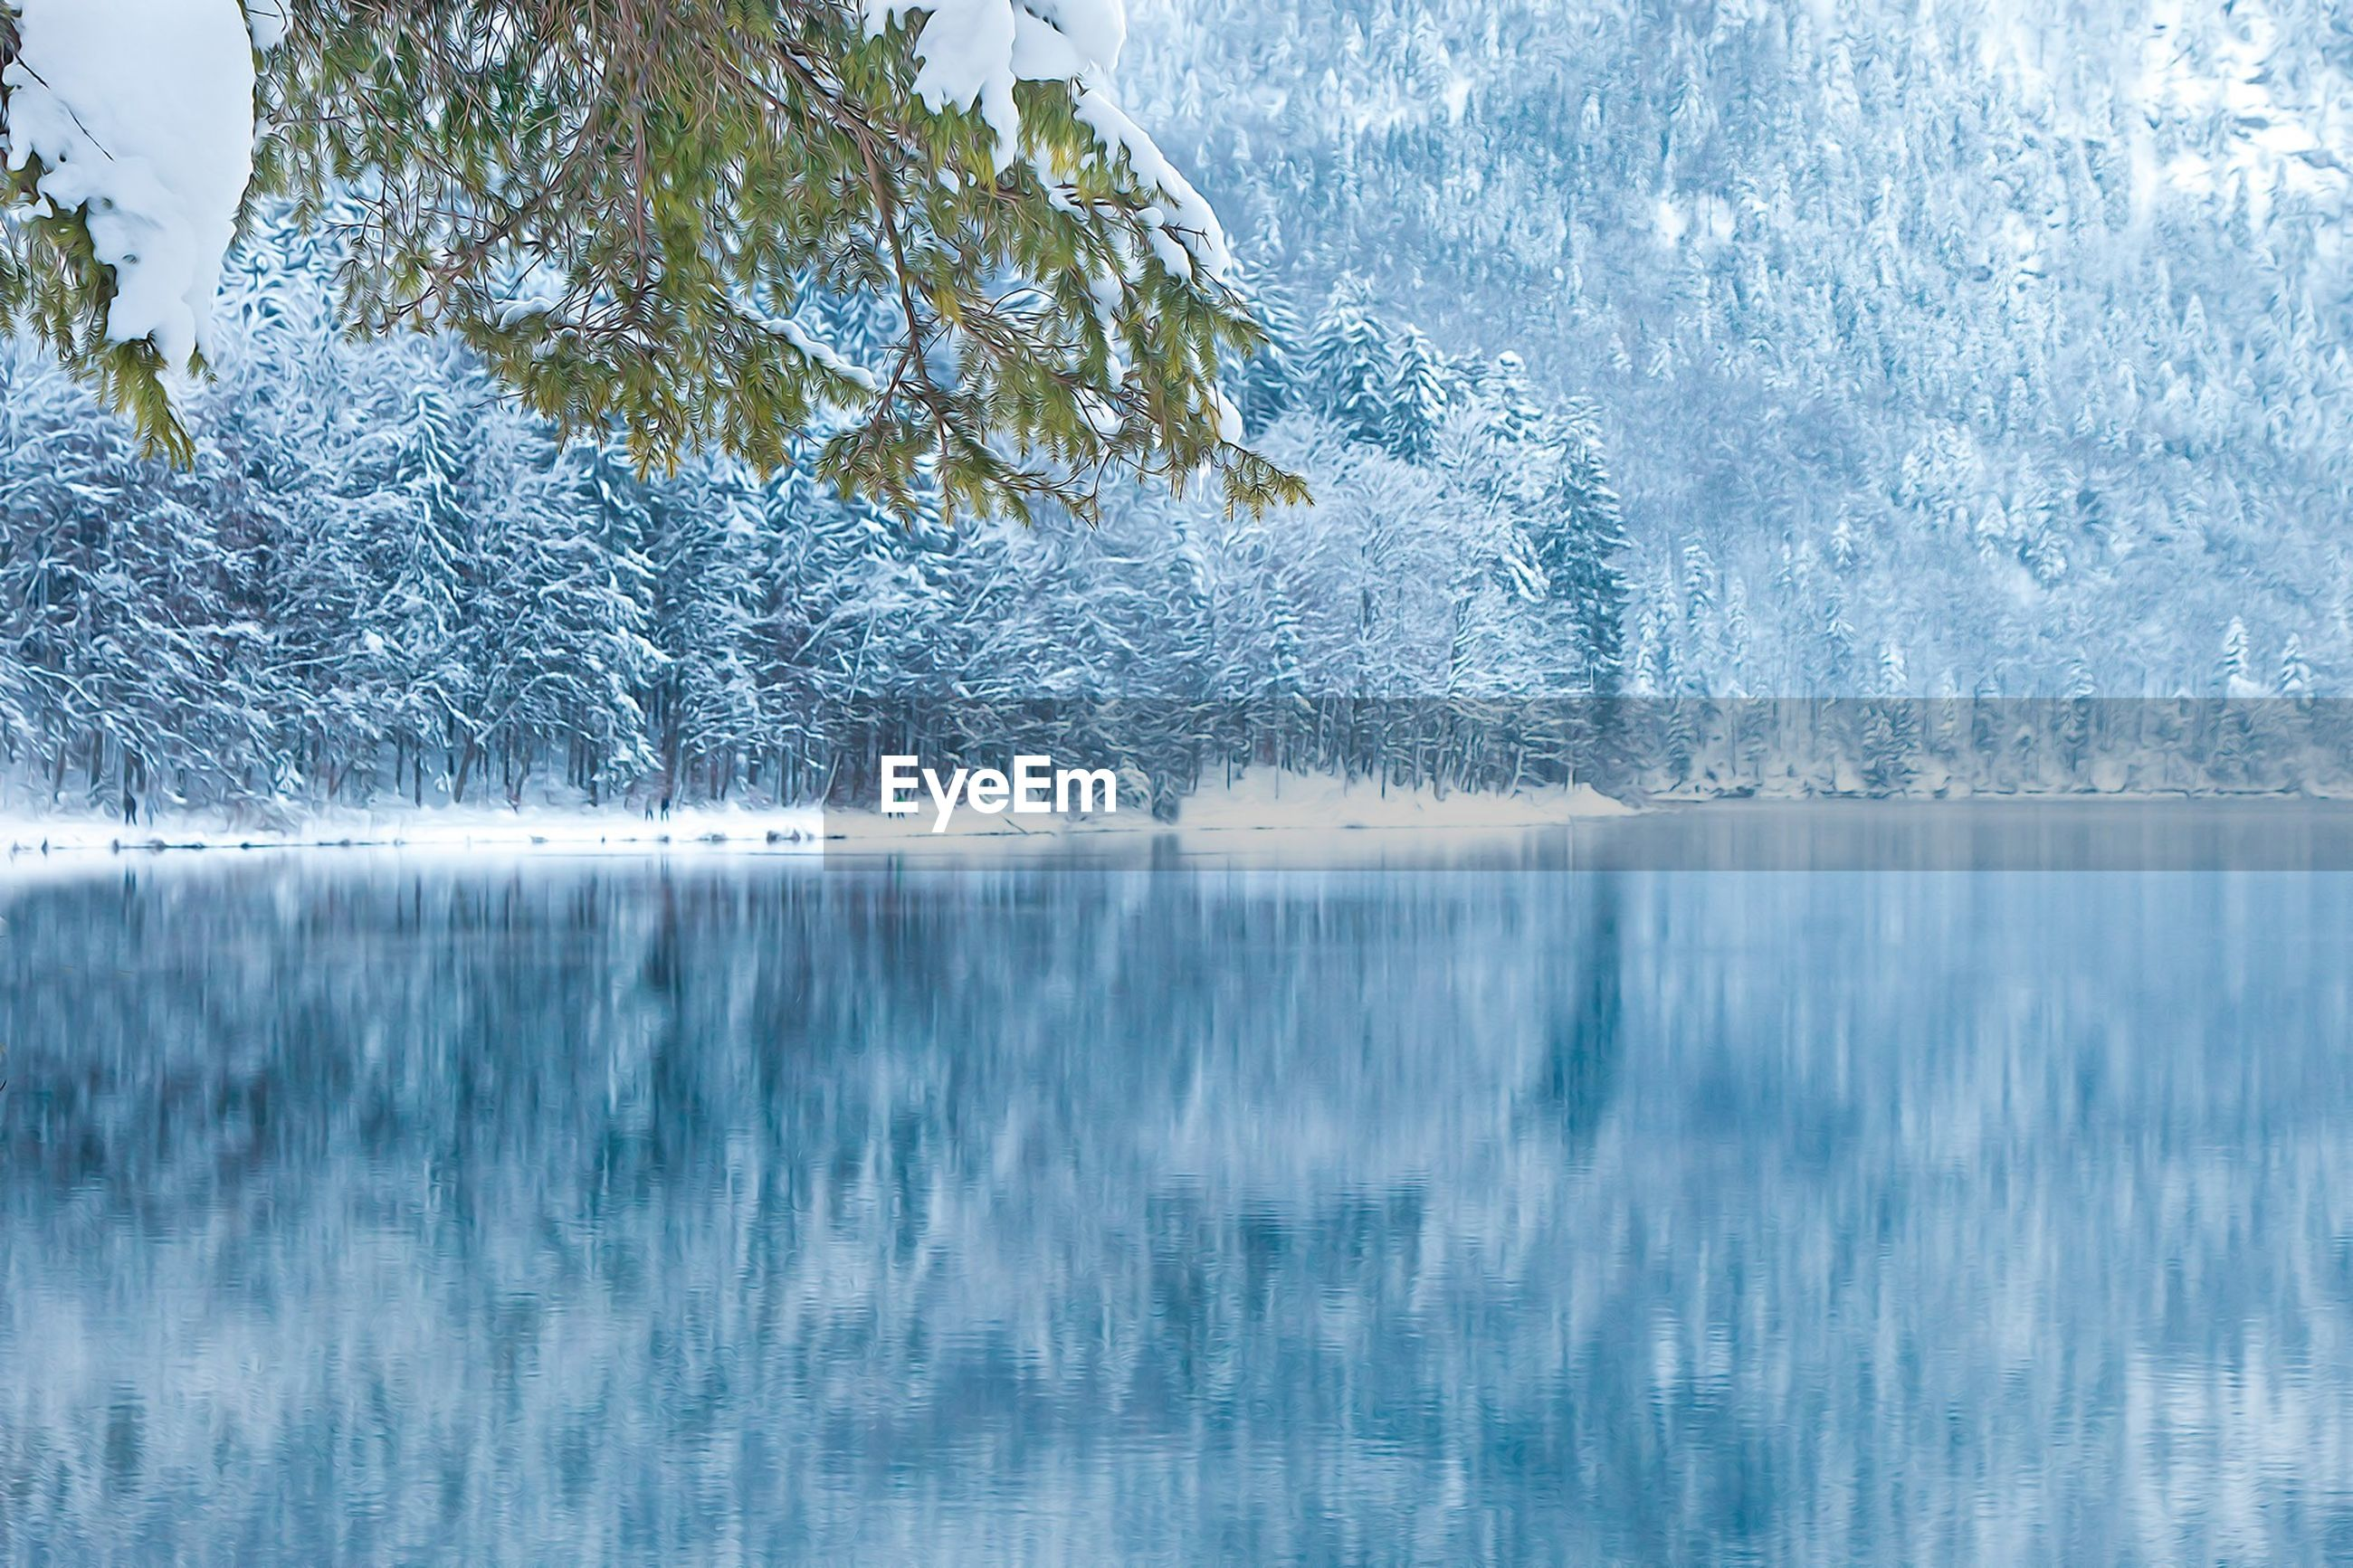 water, beauty in nature, reflection, waterfront, cold temperature, winter, tranquility, scenics, nature, tranquil scene, lake, snow, ice, frozen, season, idyllic, day, tree, outdoors, blue